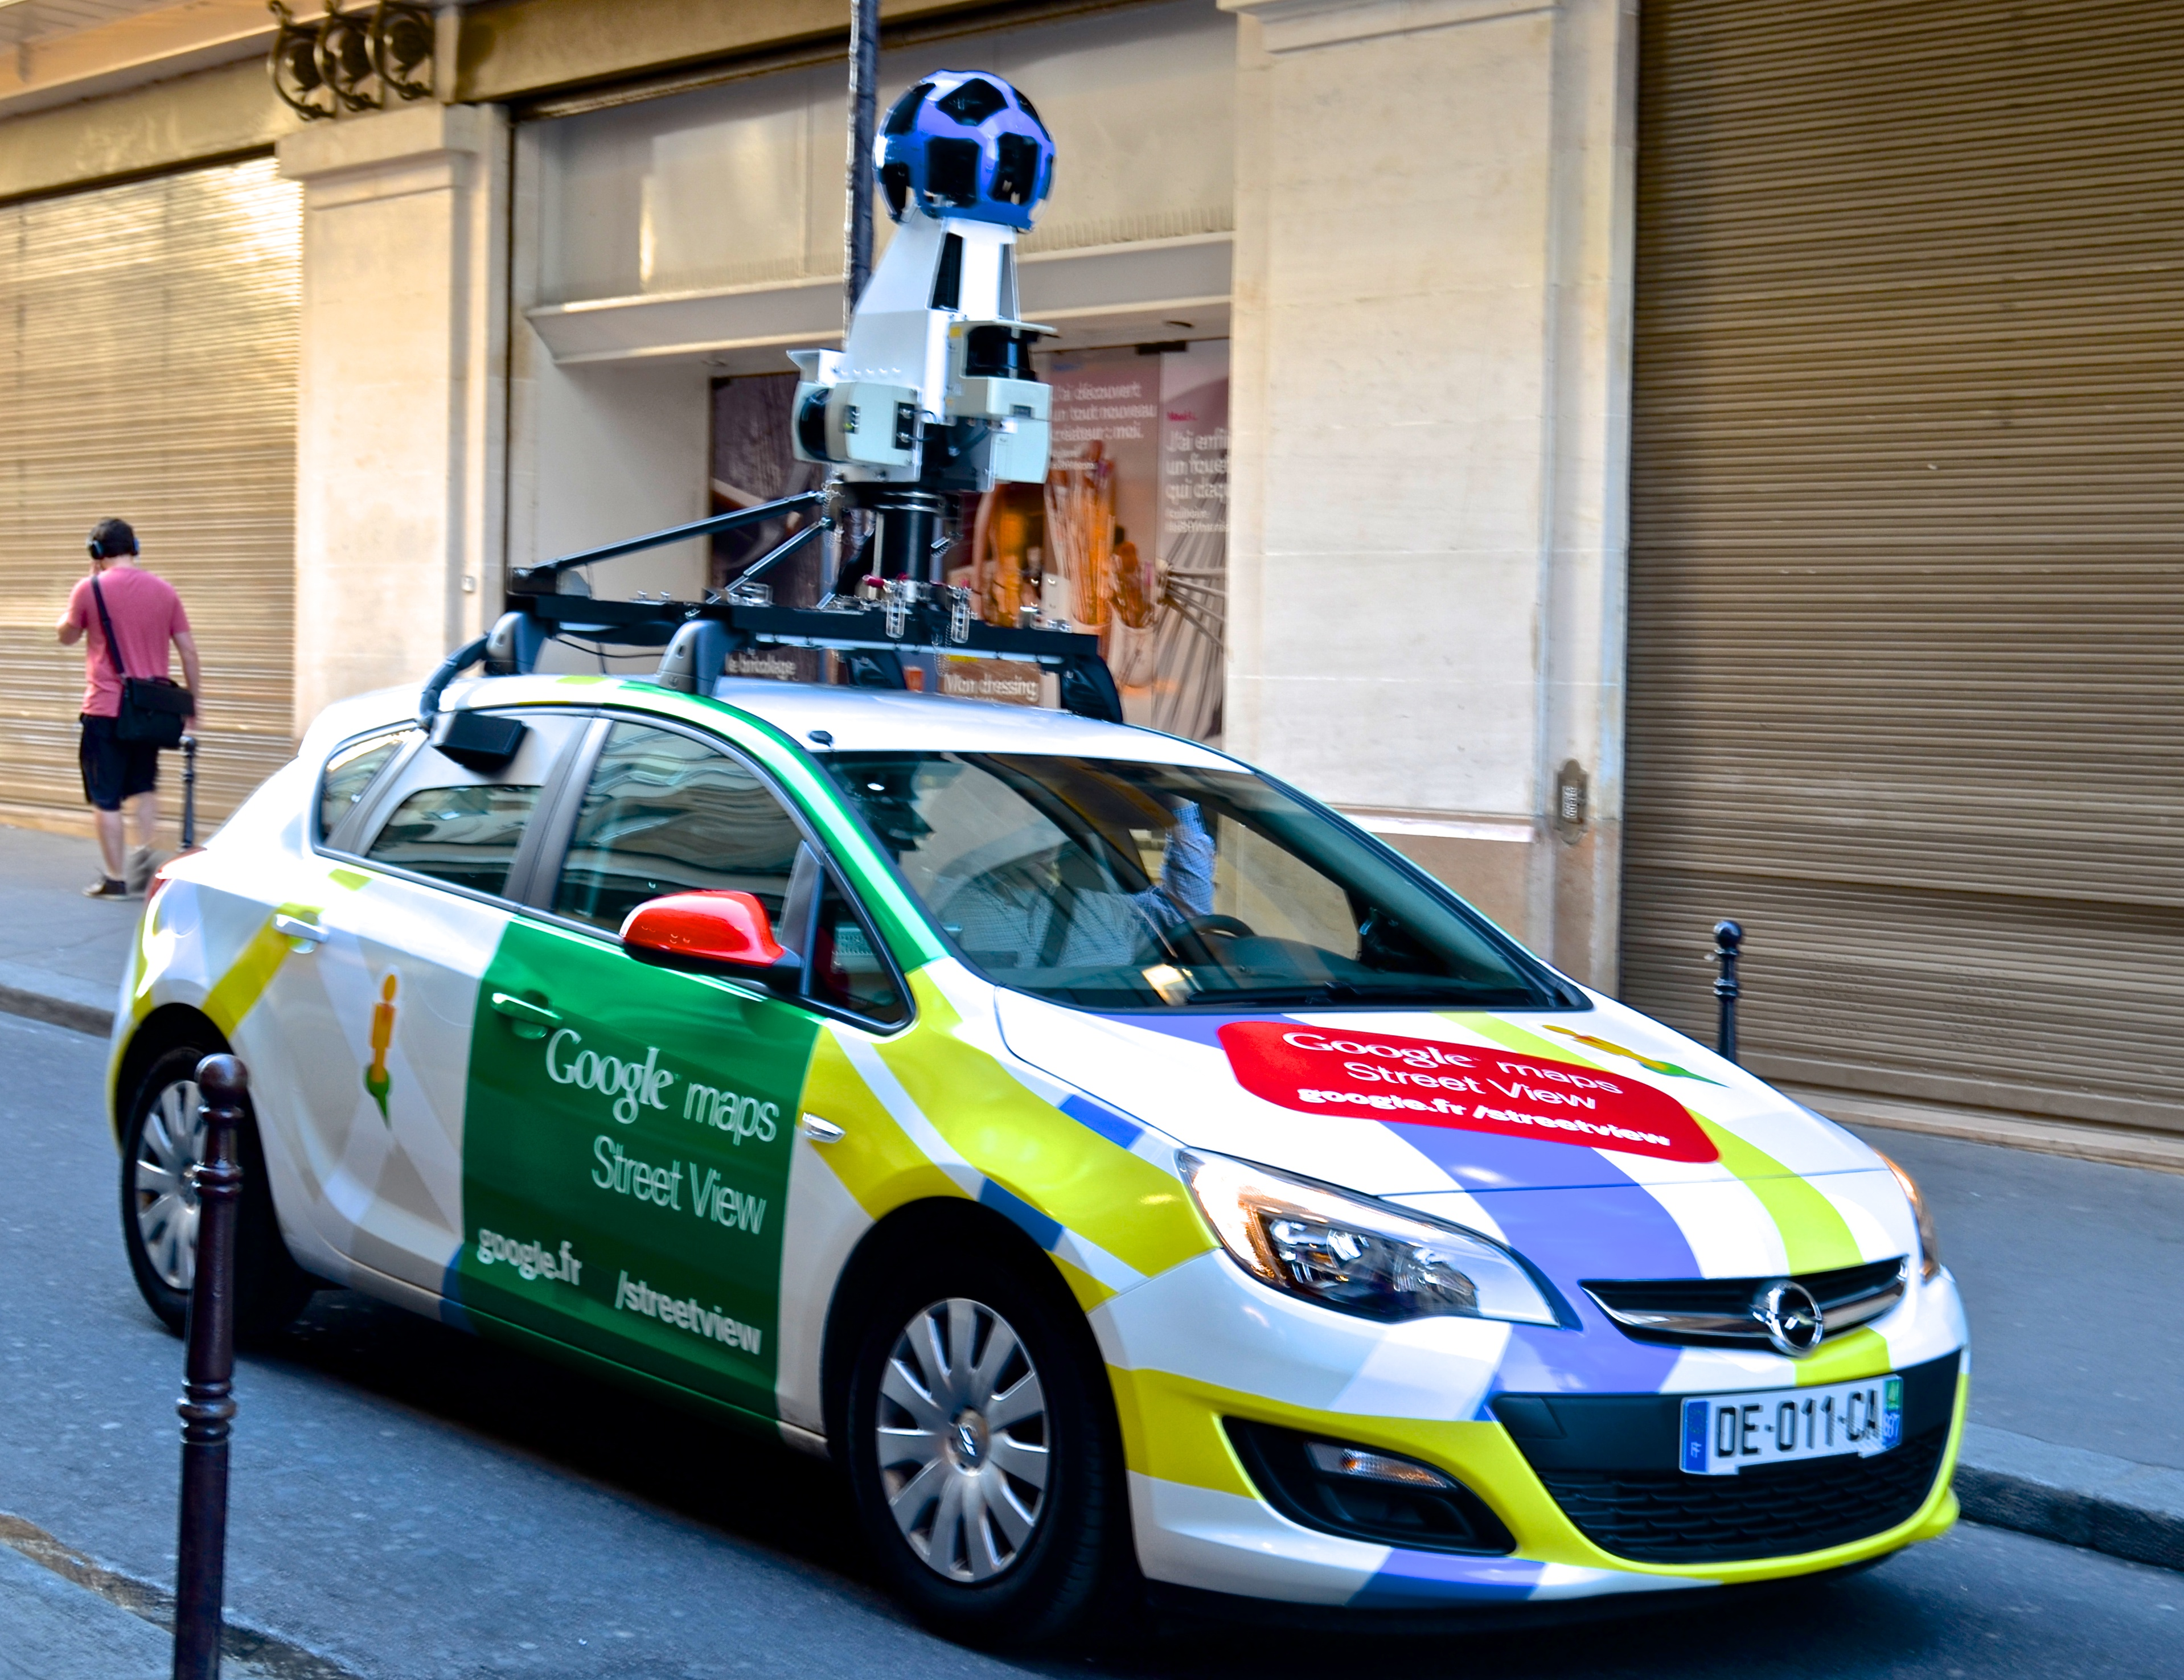 File:Google maps car, Paris May 2014.jpg - Wikimedia Commons on google tools, google street view, google shopping, google graphics, google latitude, google health, google sky, route planning software, google mobile, google database, google goggles, google navigation, google statistics, google tracking, google translate, google earth, google maps, google voice, google science, google moon, google research, google chrome, google media, google listing, google gps, google information, web mapping, google business, google search, google docs, google mars, google map maker, google animation, google art project,